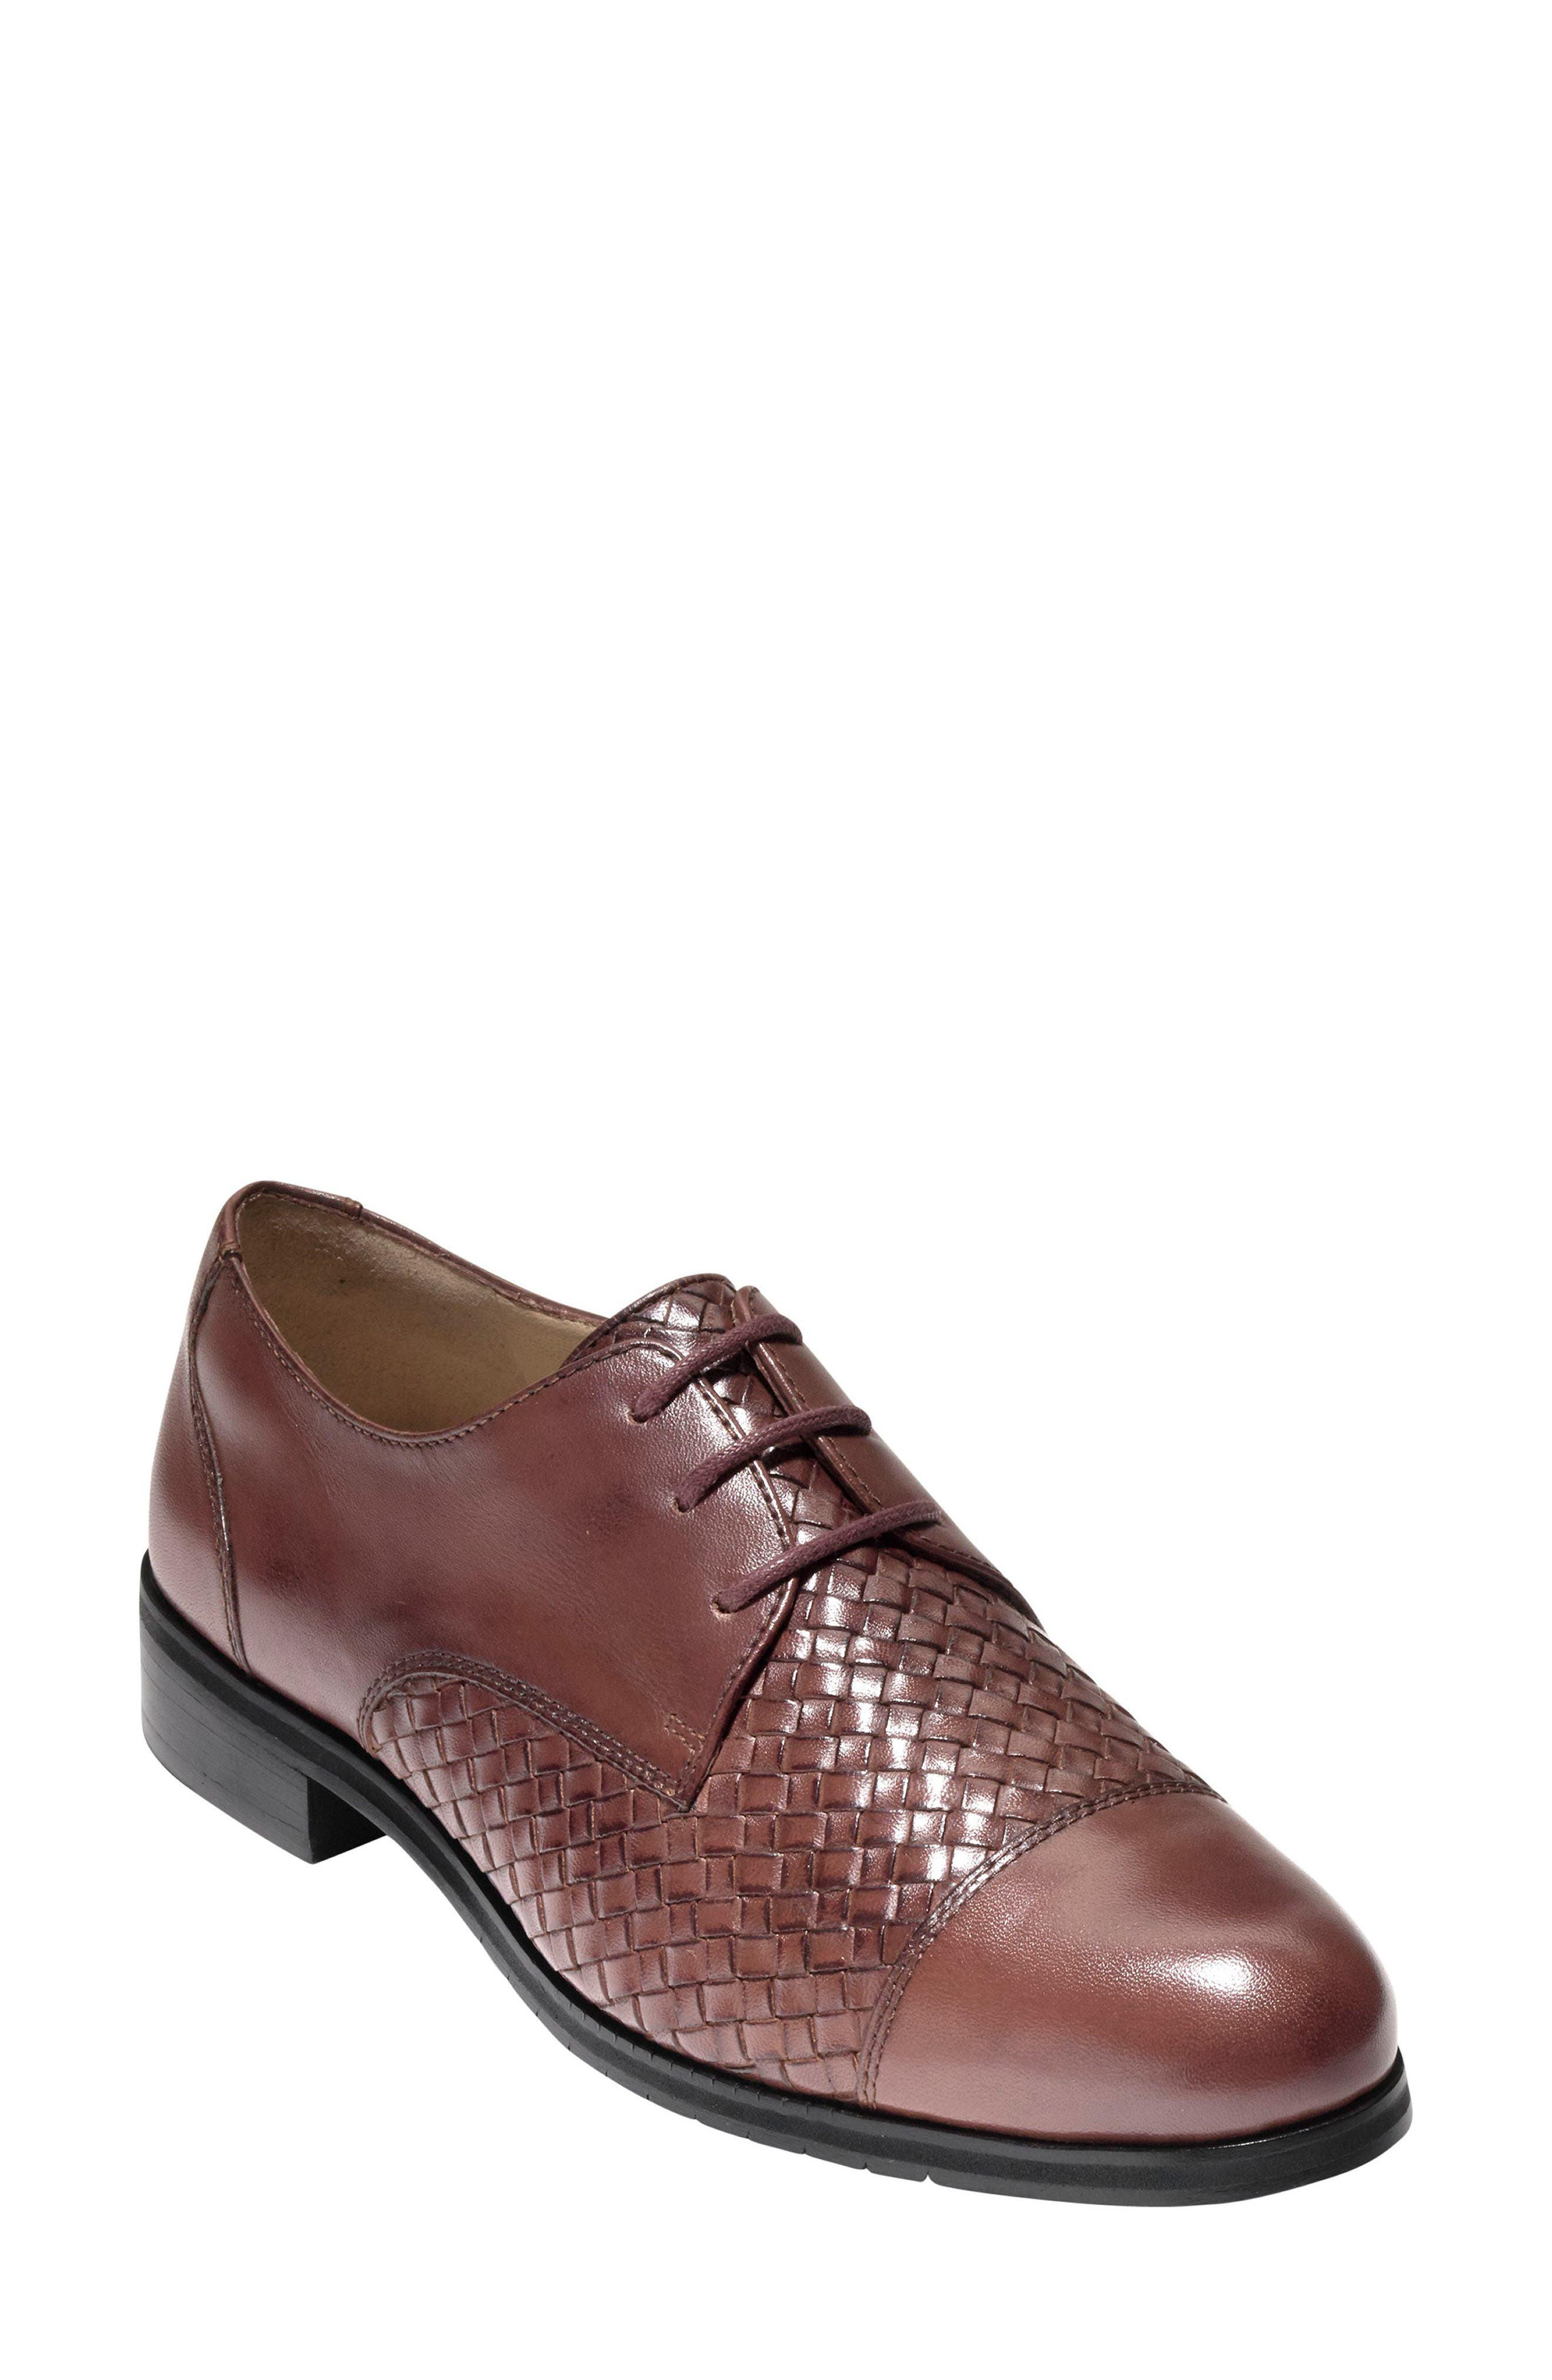 Main Image - Cole Haan Jagger Oxford (Women)